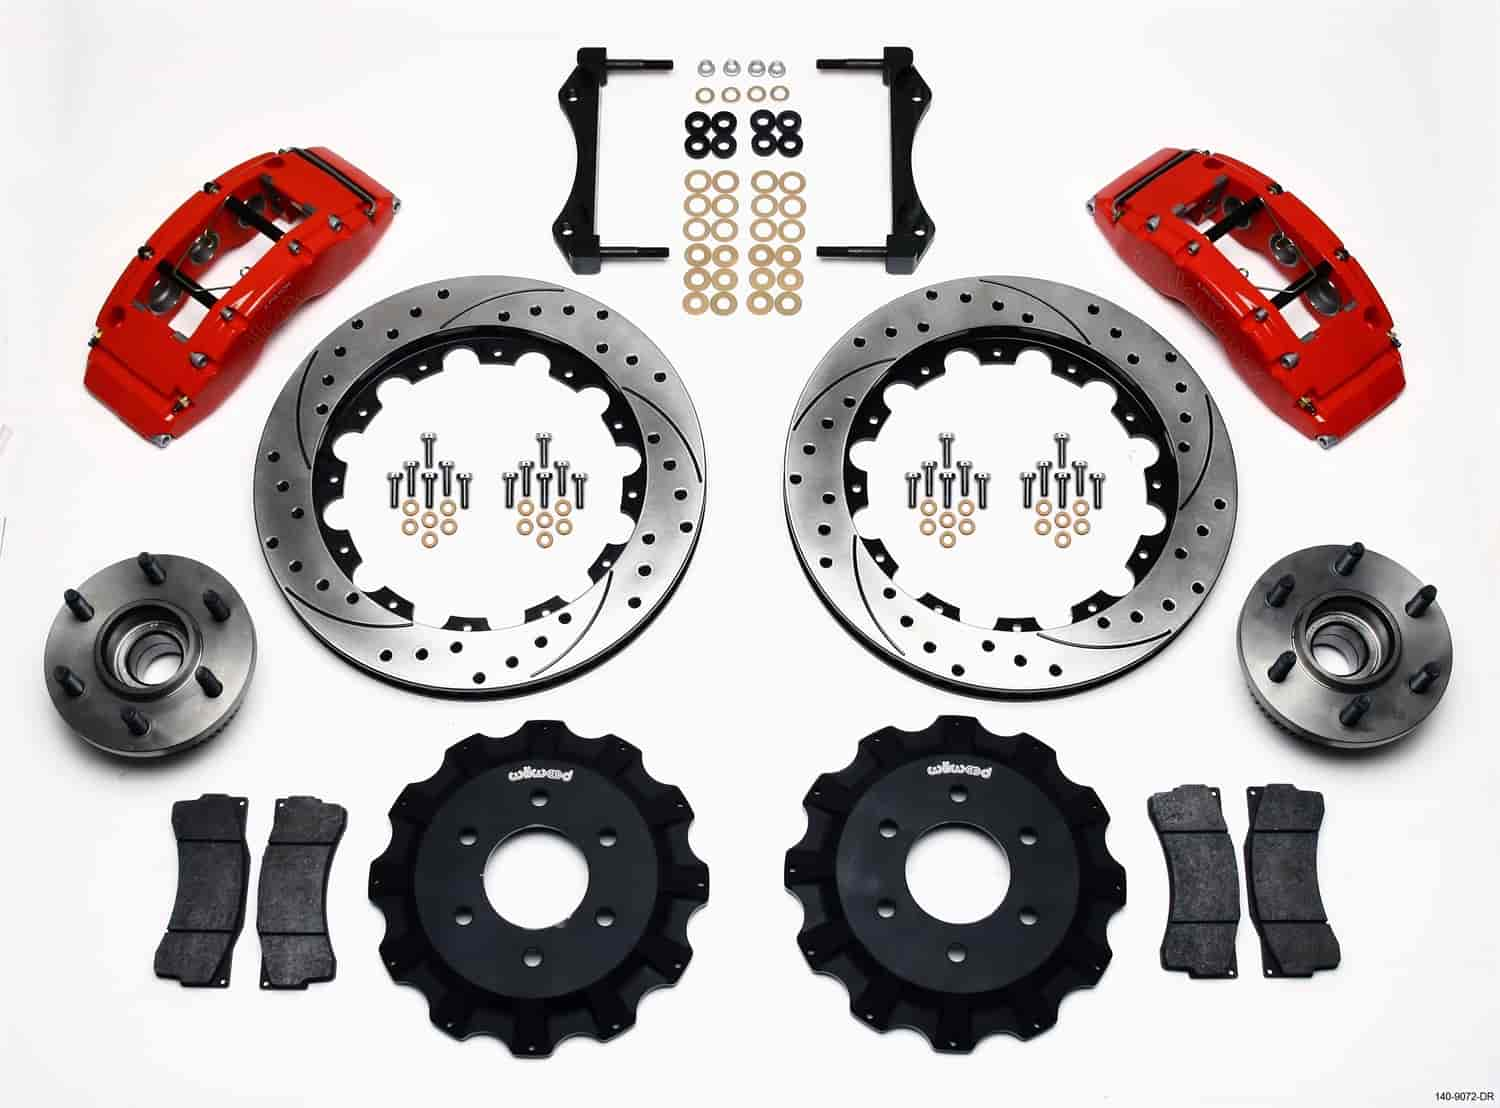 Wilwood 140-9072-DR - Wilwood TC6R Big Brake Truck Front Brake Kit